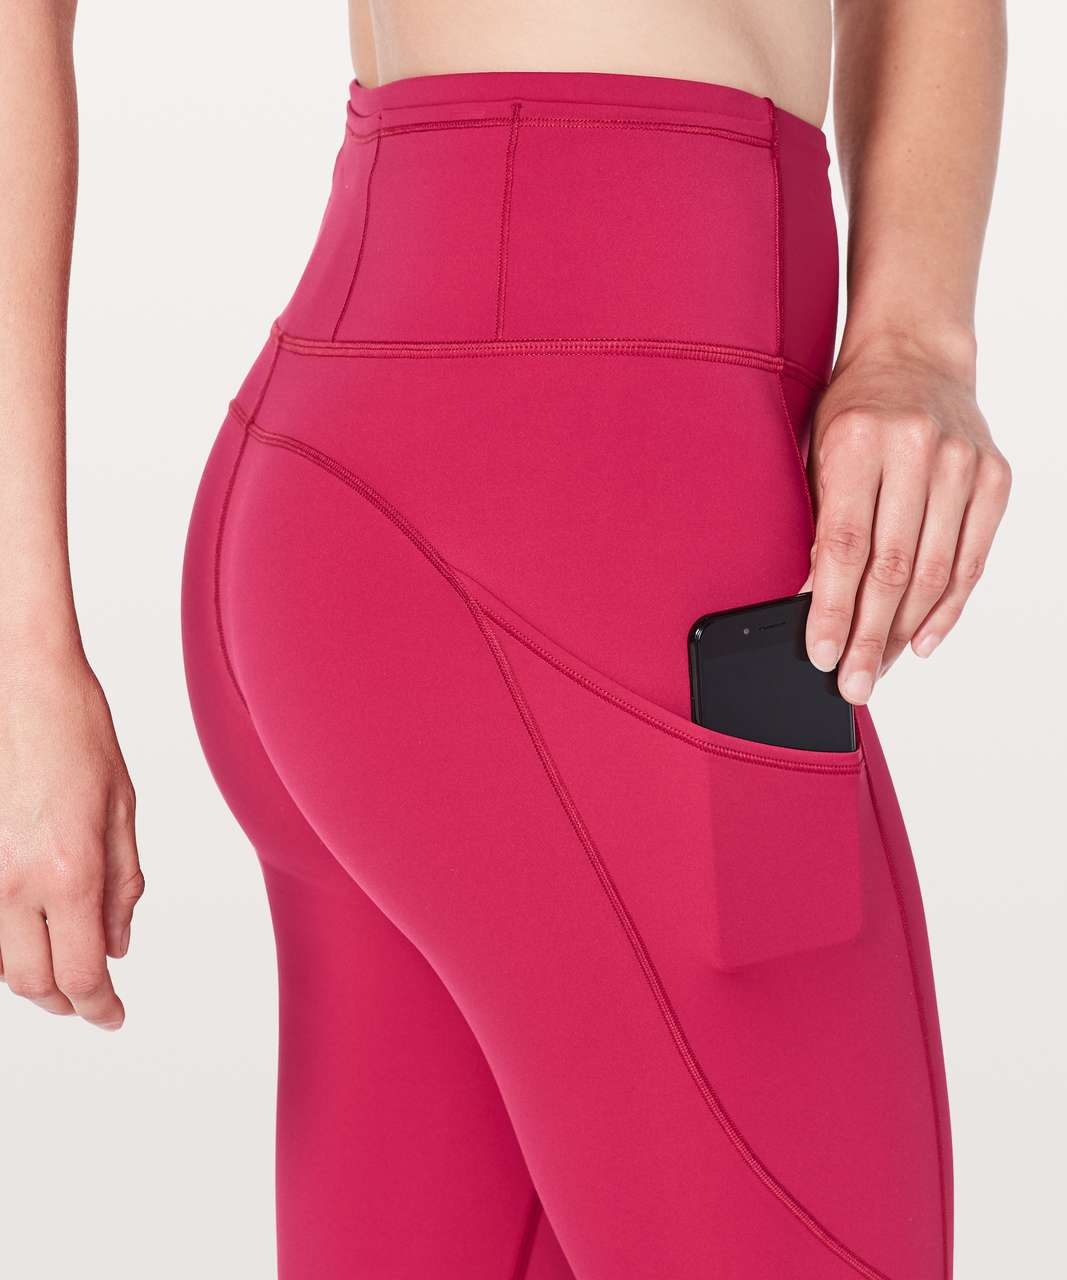 "Lululemon Fast & Free 7/8 Tight II *Nulux 25"" - Ruby Red"